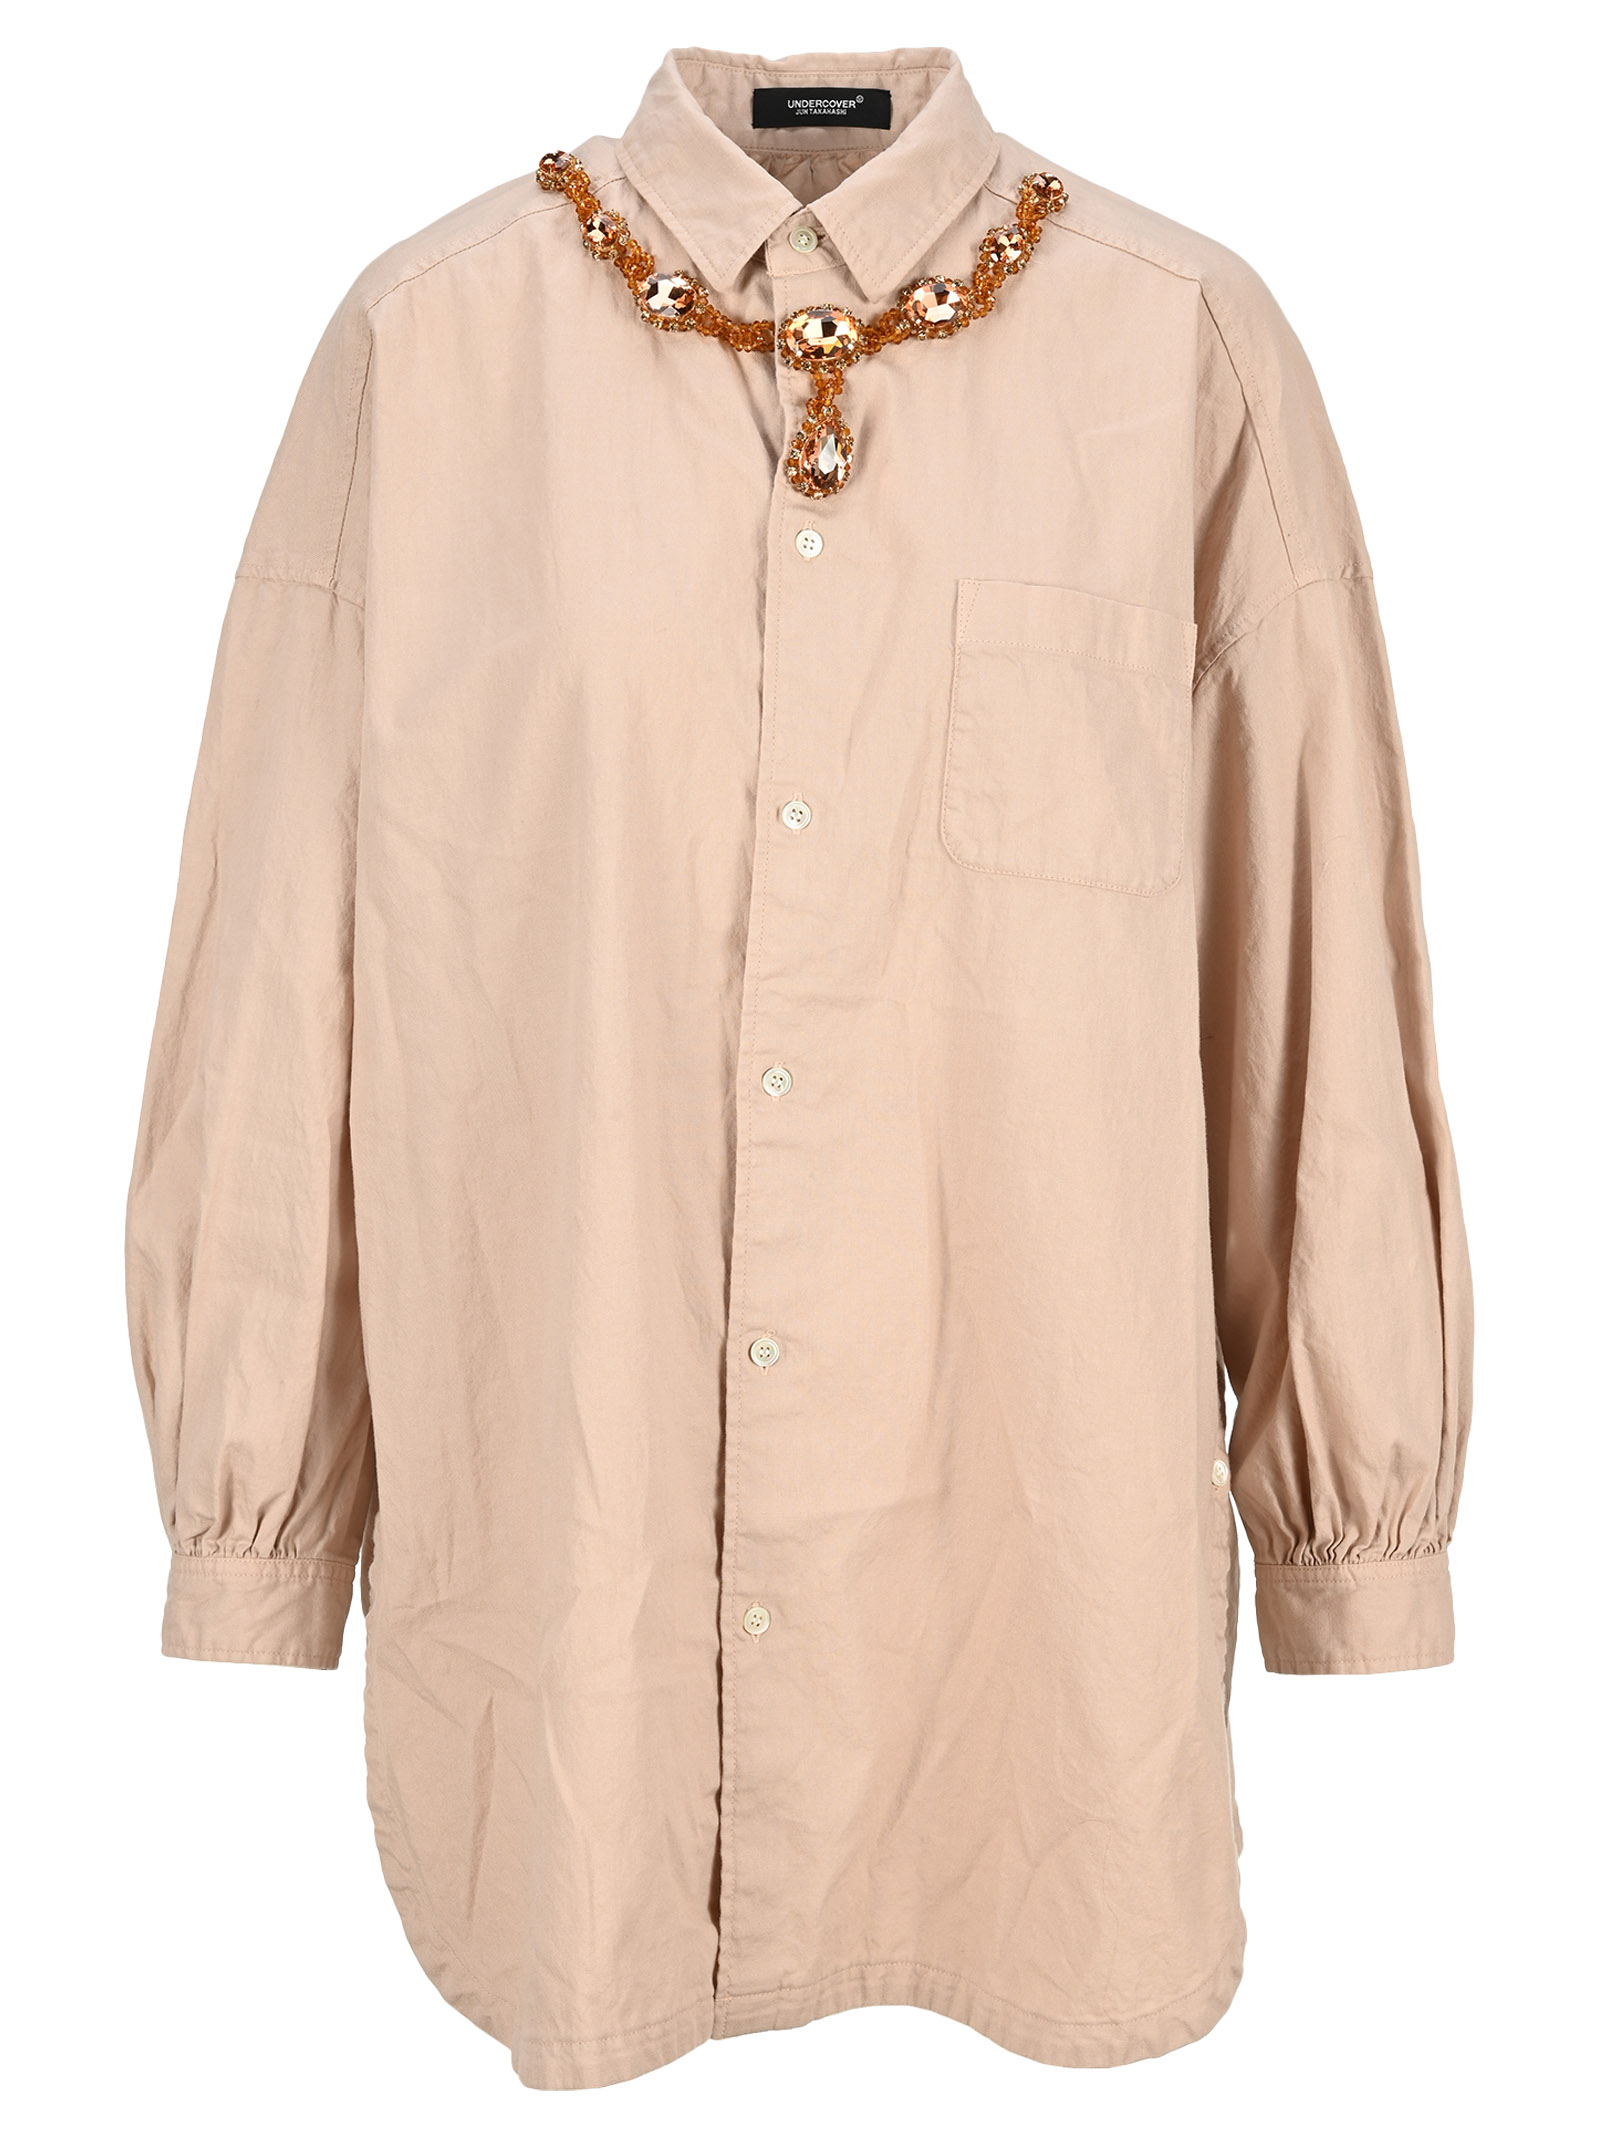 Undercover CRYSTAL NECKLACE OVERSHIRT